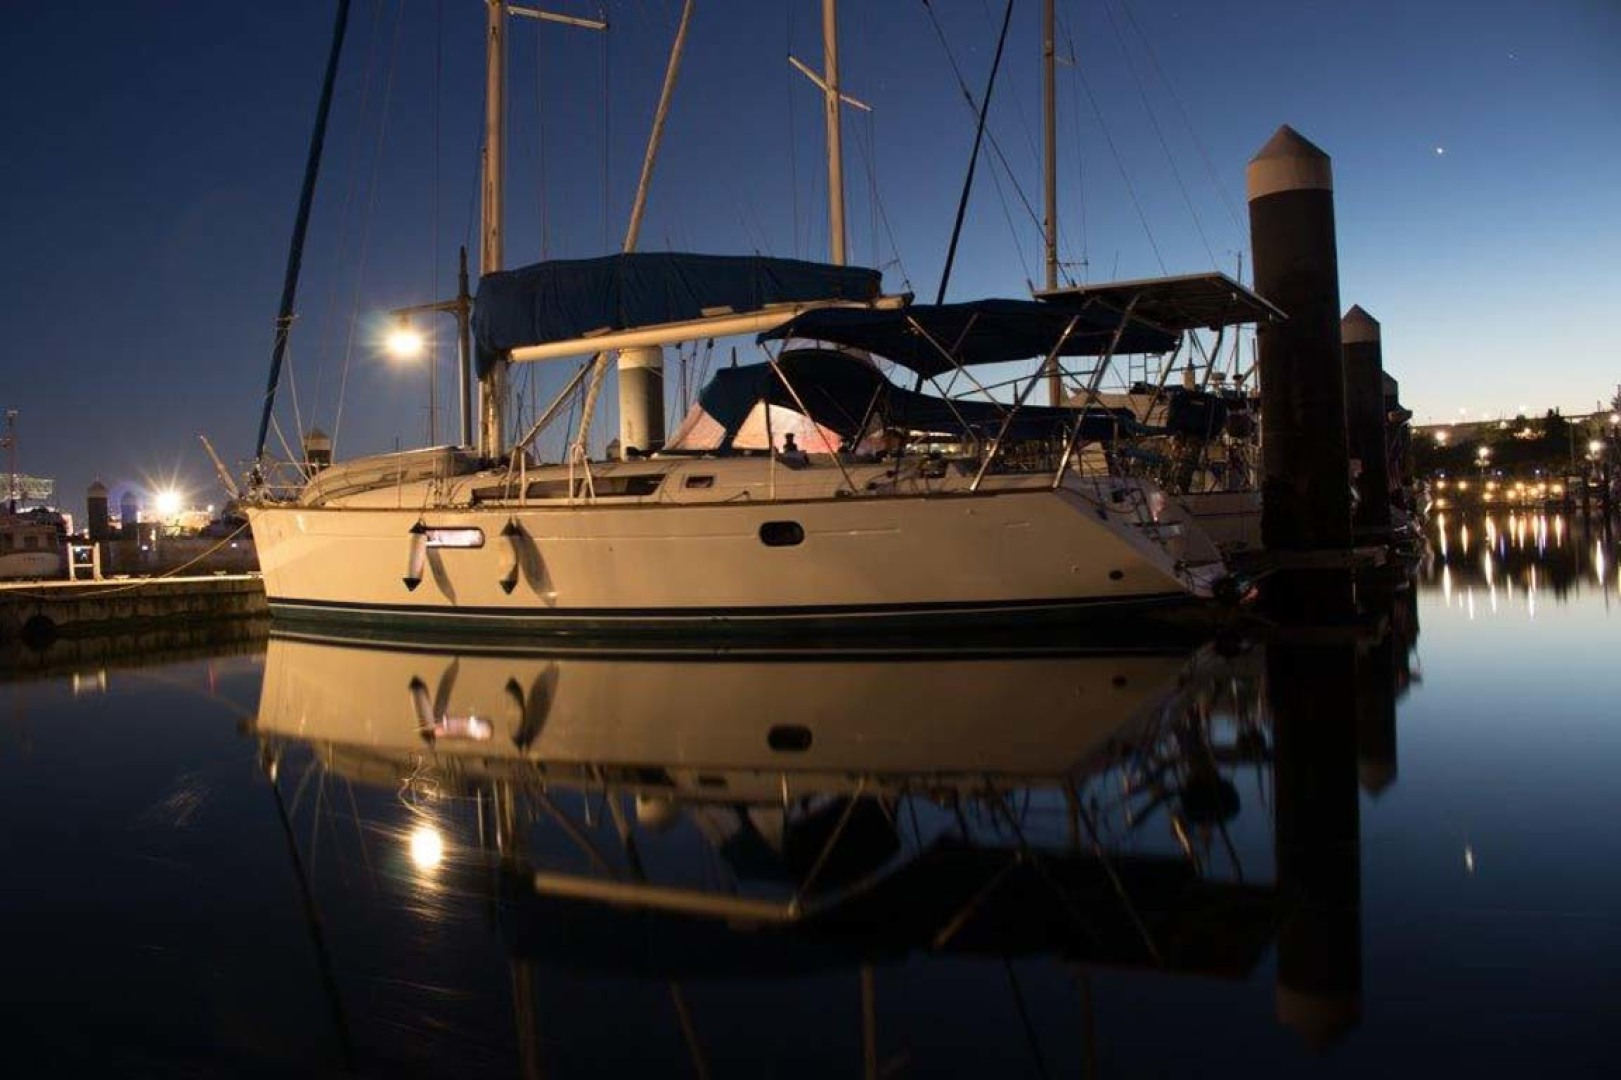 Jeanneau-Sun Odyssey 44i 2010-Intrigue Poulsbo-Washington-United States-Port View Night-1153350 | Thumbnail